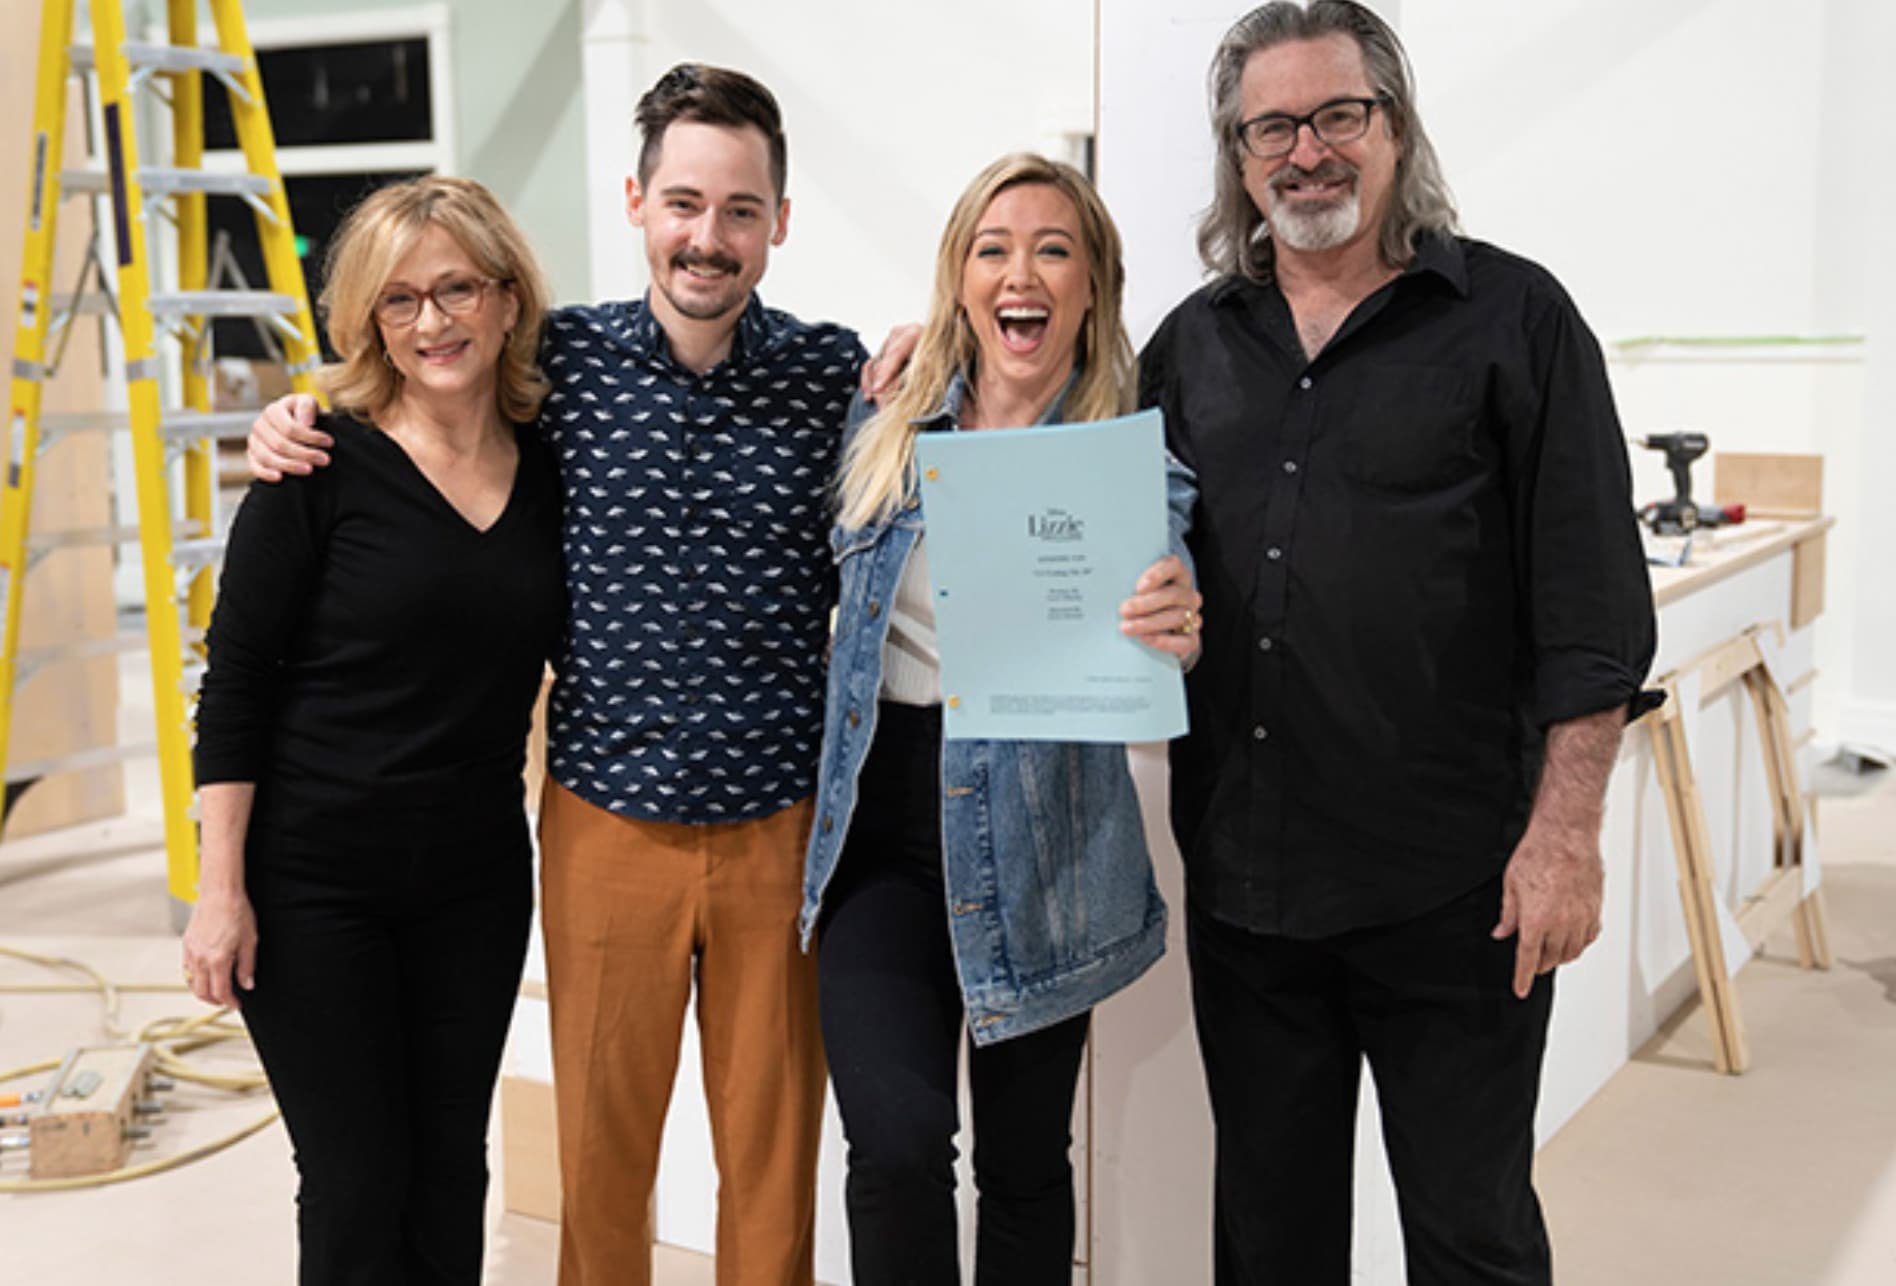 All About Lizzie 2012 lizzie mcguire revival casts 3 original stars: first photo